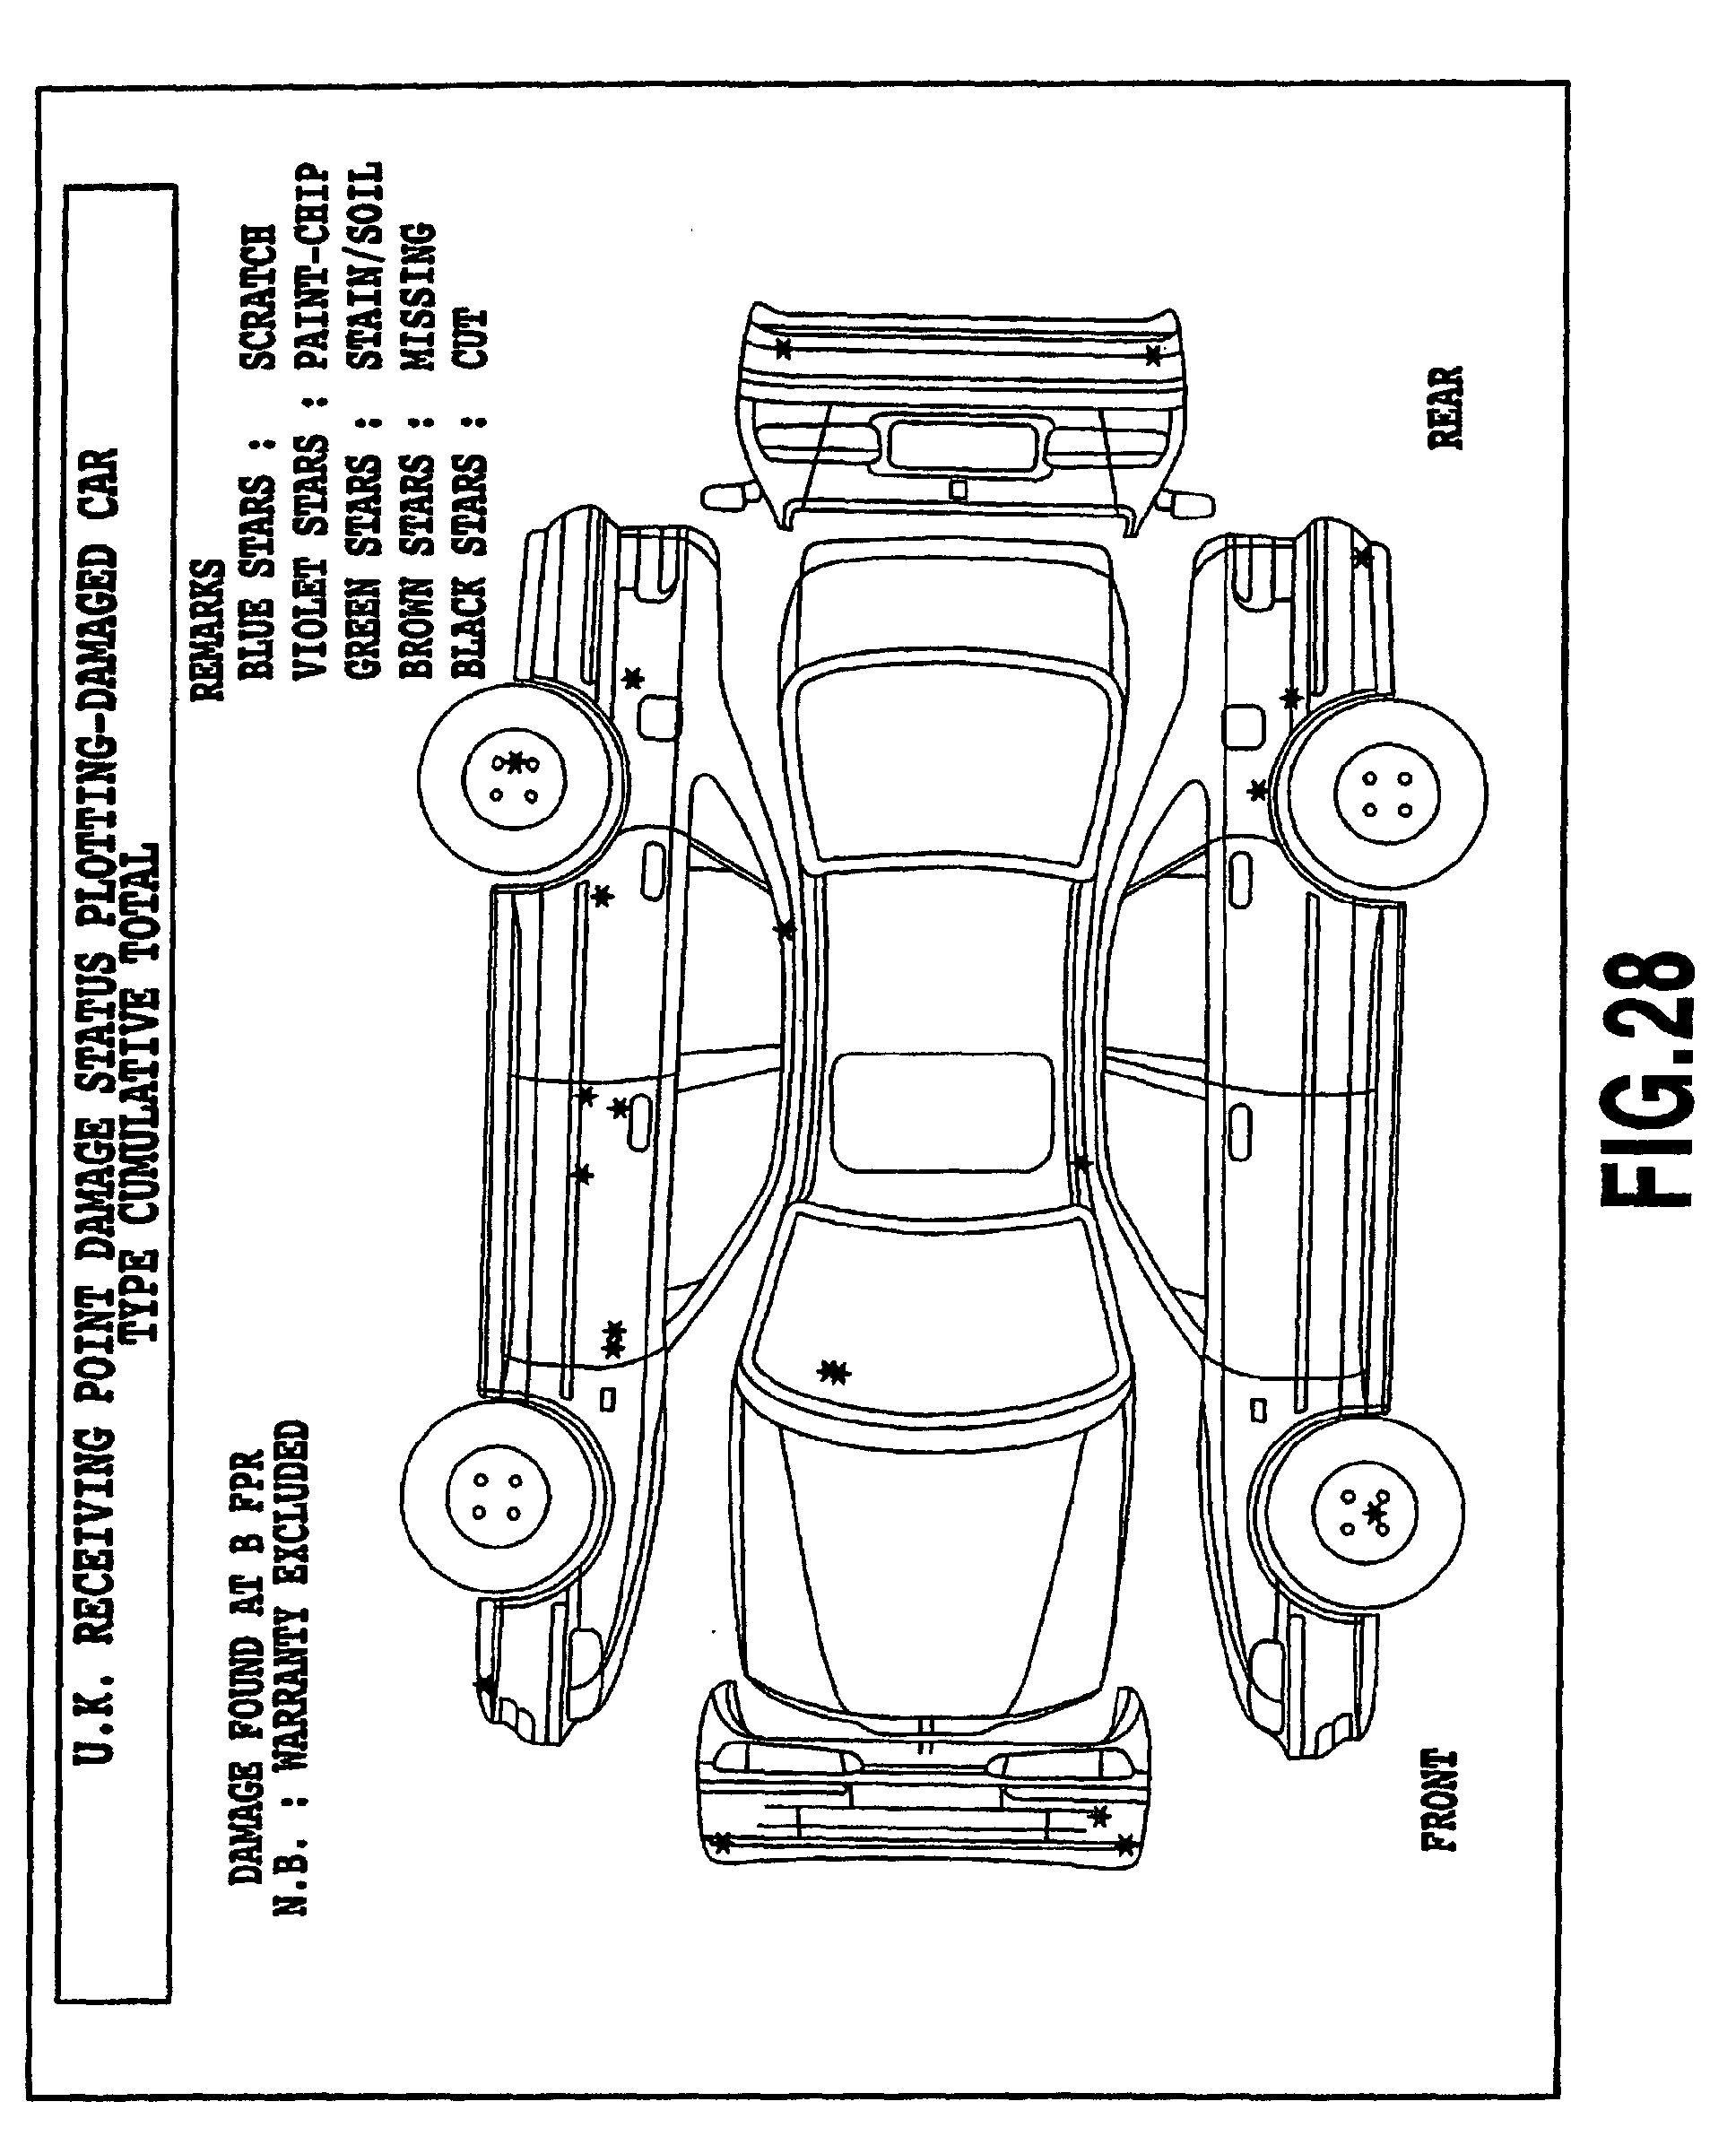 Car Diagram Template Car Free Engine Image For User